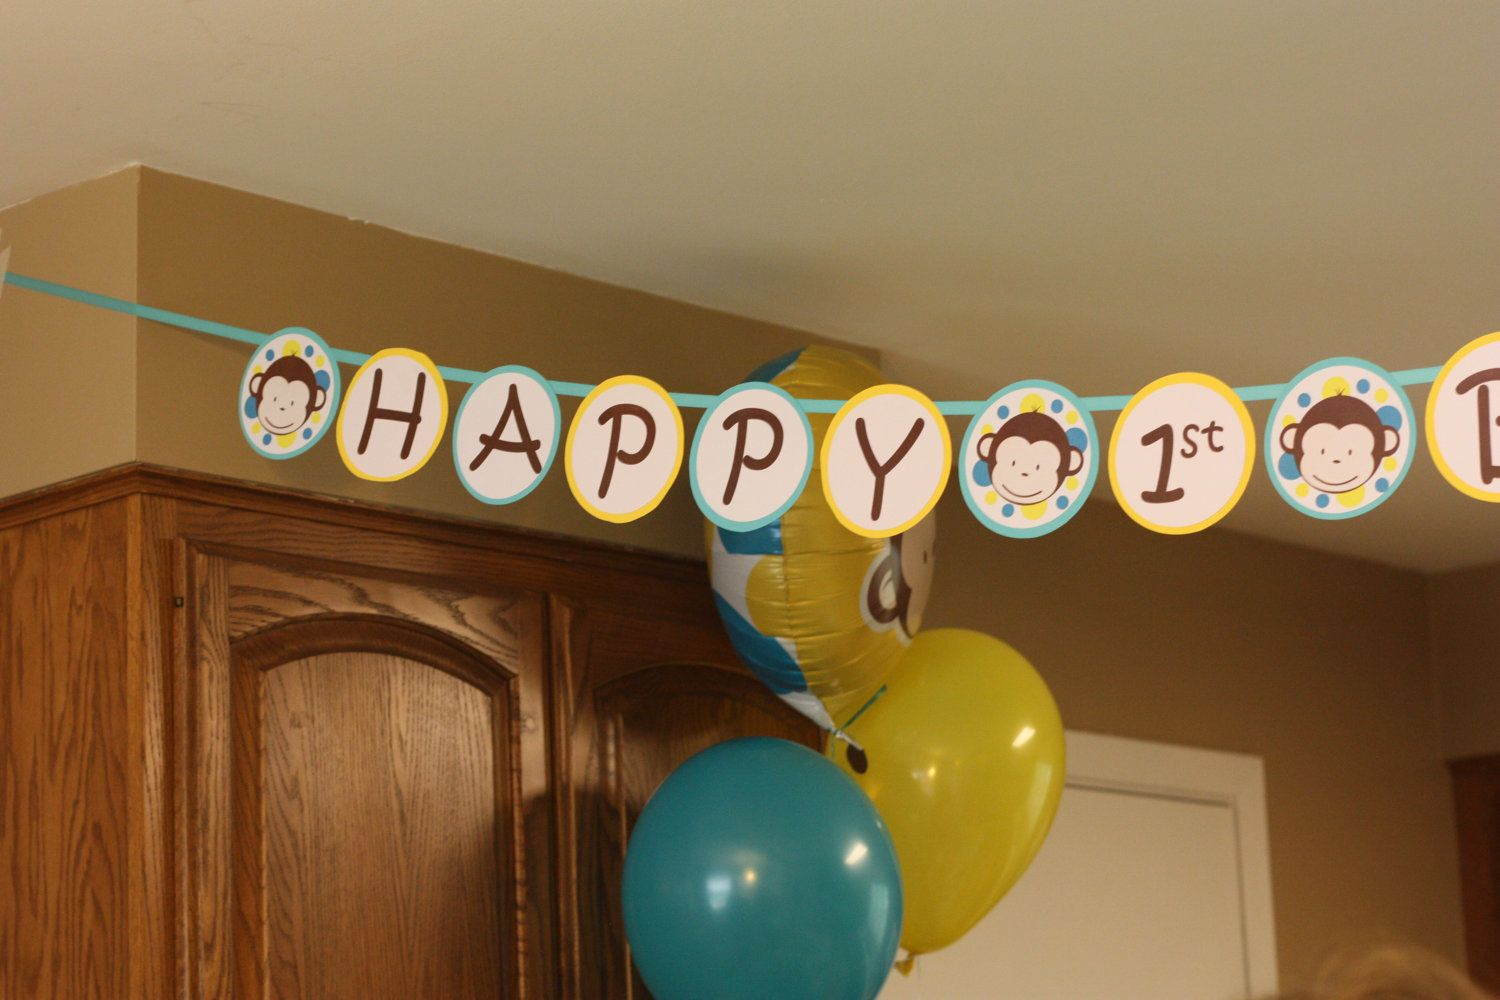 personalized birthday banners for 1st birthday ; 21deeefa77b9f82daeace27281eb0449